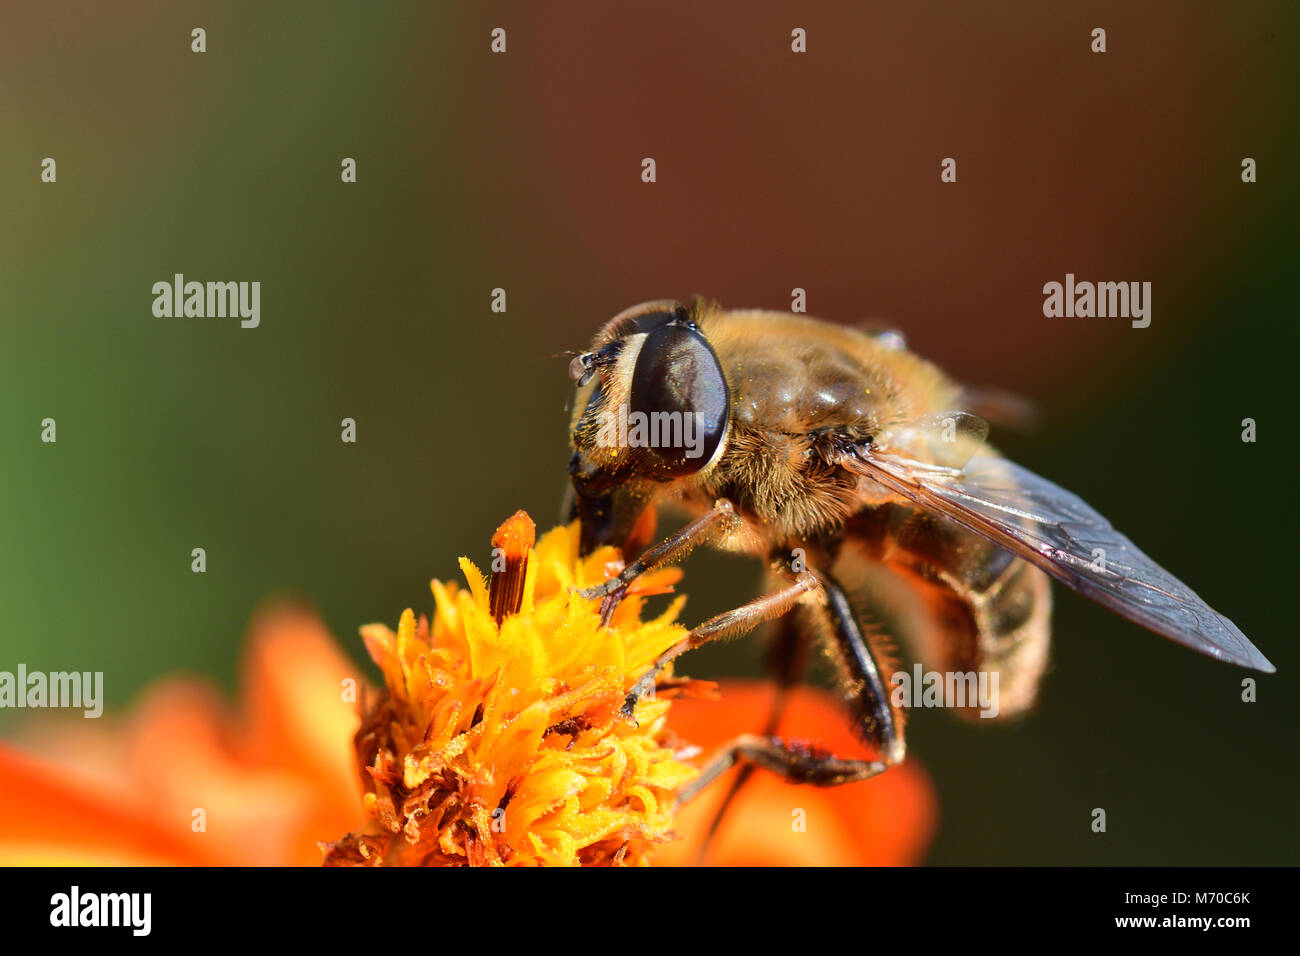 Macro shot of a bee pollinating an orange coreopsis flower - Stock Image